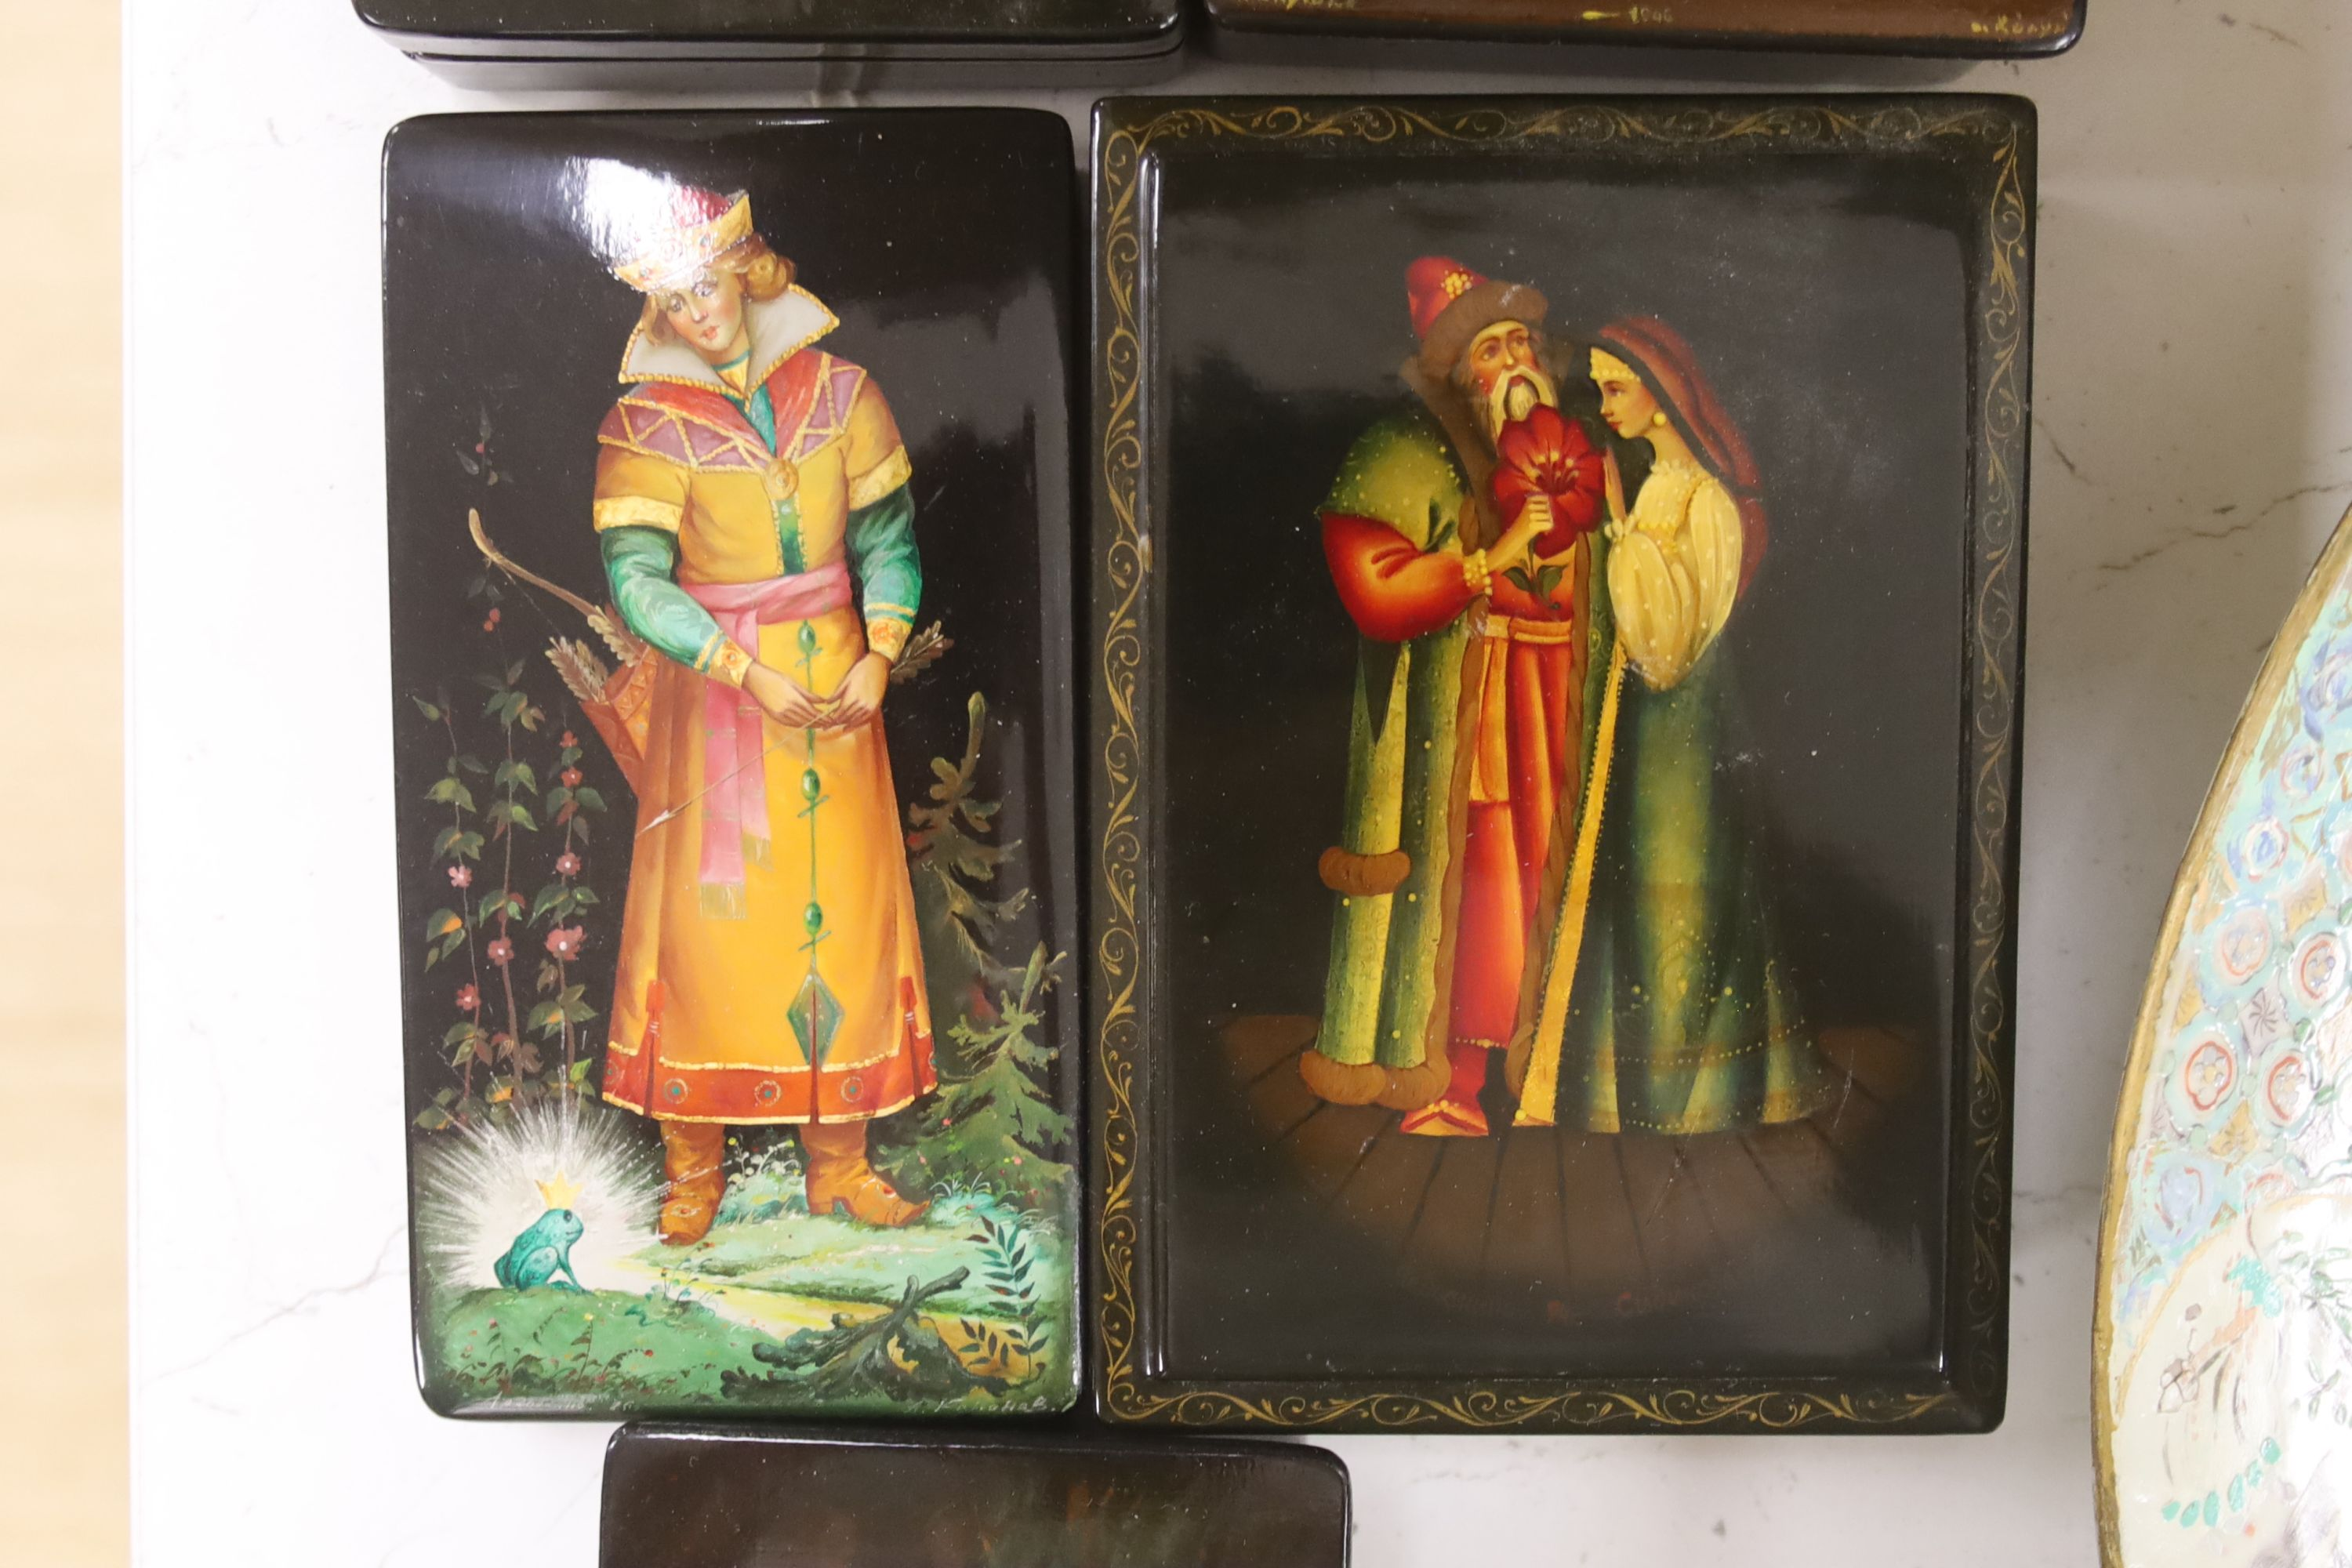 Six Russian painted lacquer boxes, each signed and inscribed, largest 18 x 13cm - Image 3 of 5